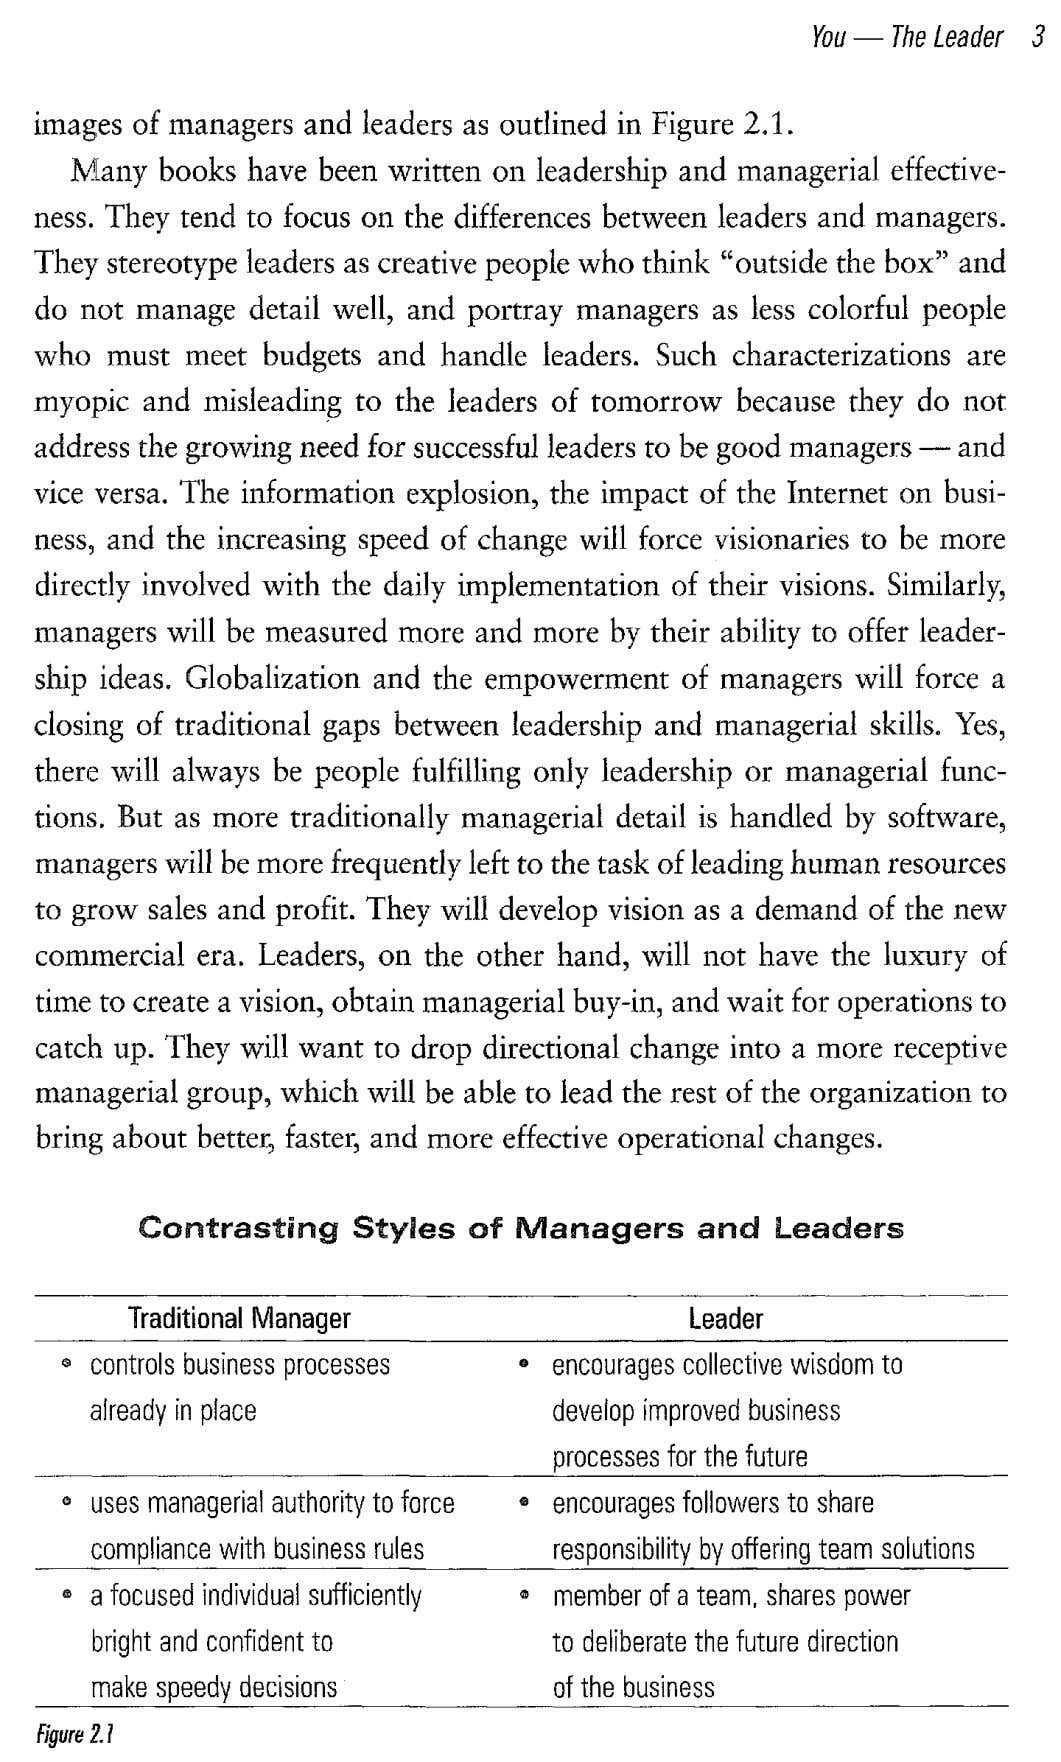 You — TheLeader 3 images of managers and leaders as outlined in Figure 2.1. Many